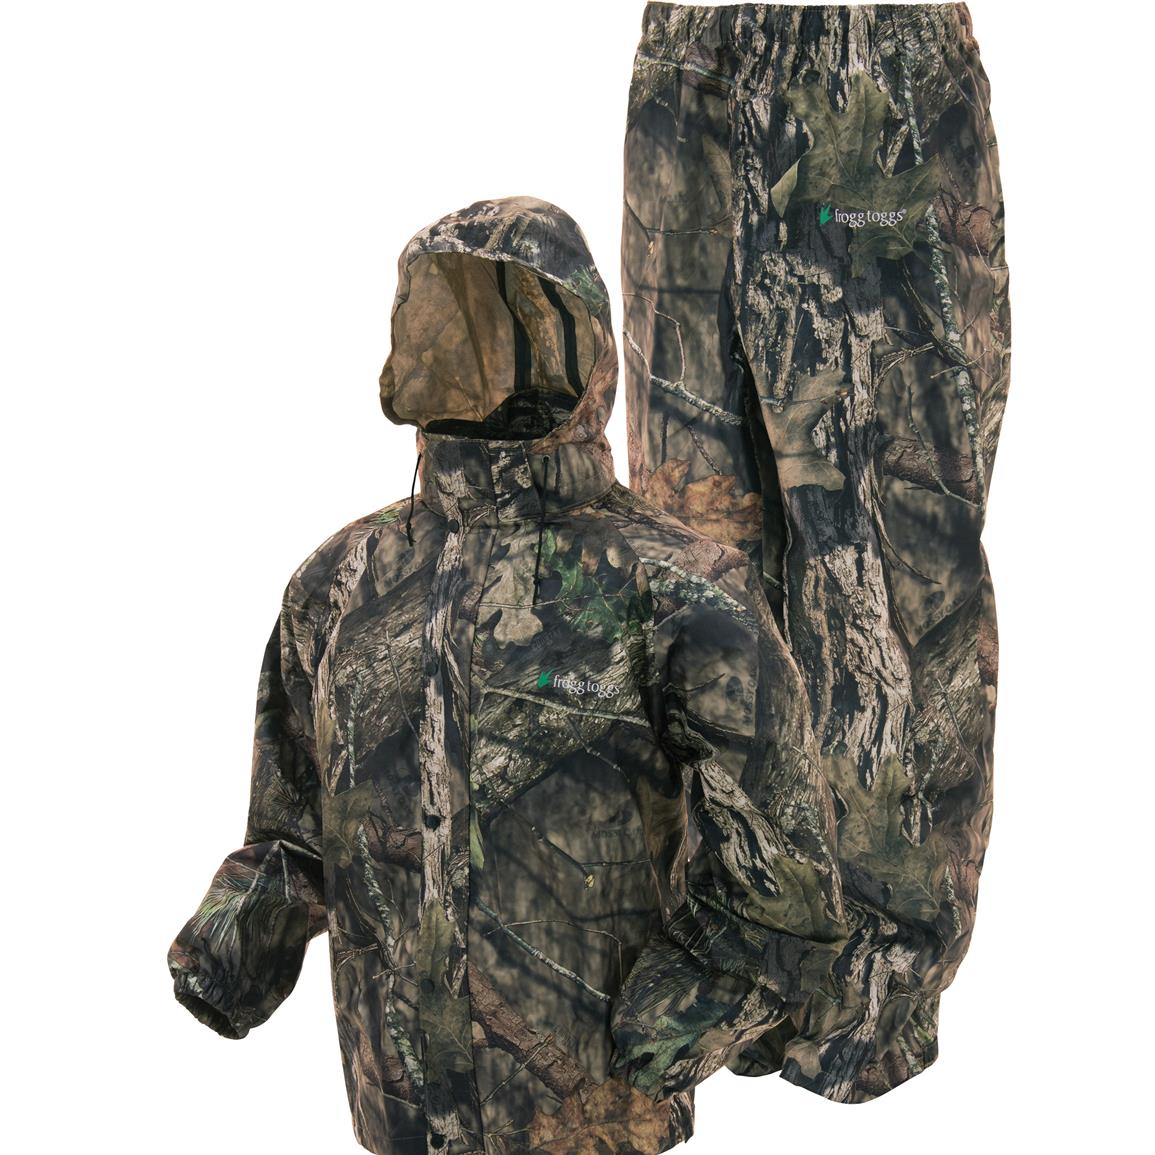 Frogg Toggs All Sport Camo Rain Suit, Mossy Oak Break-Up Country